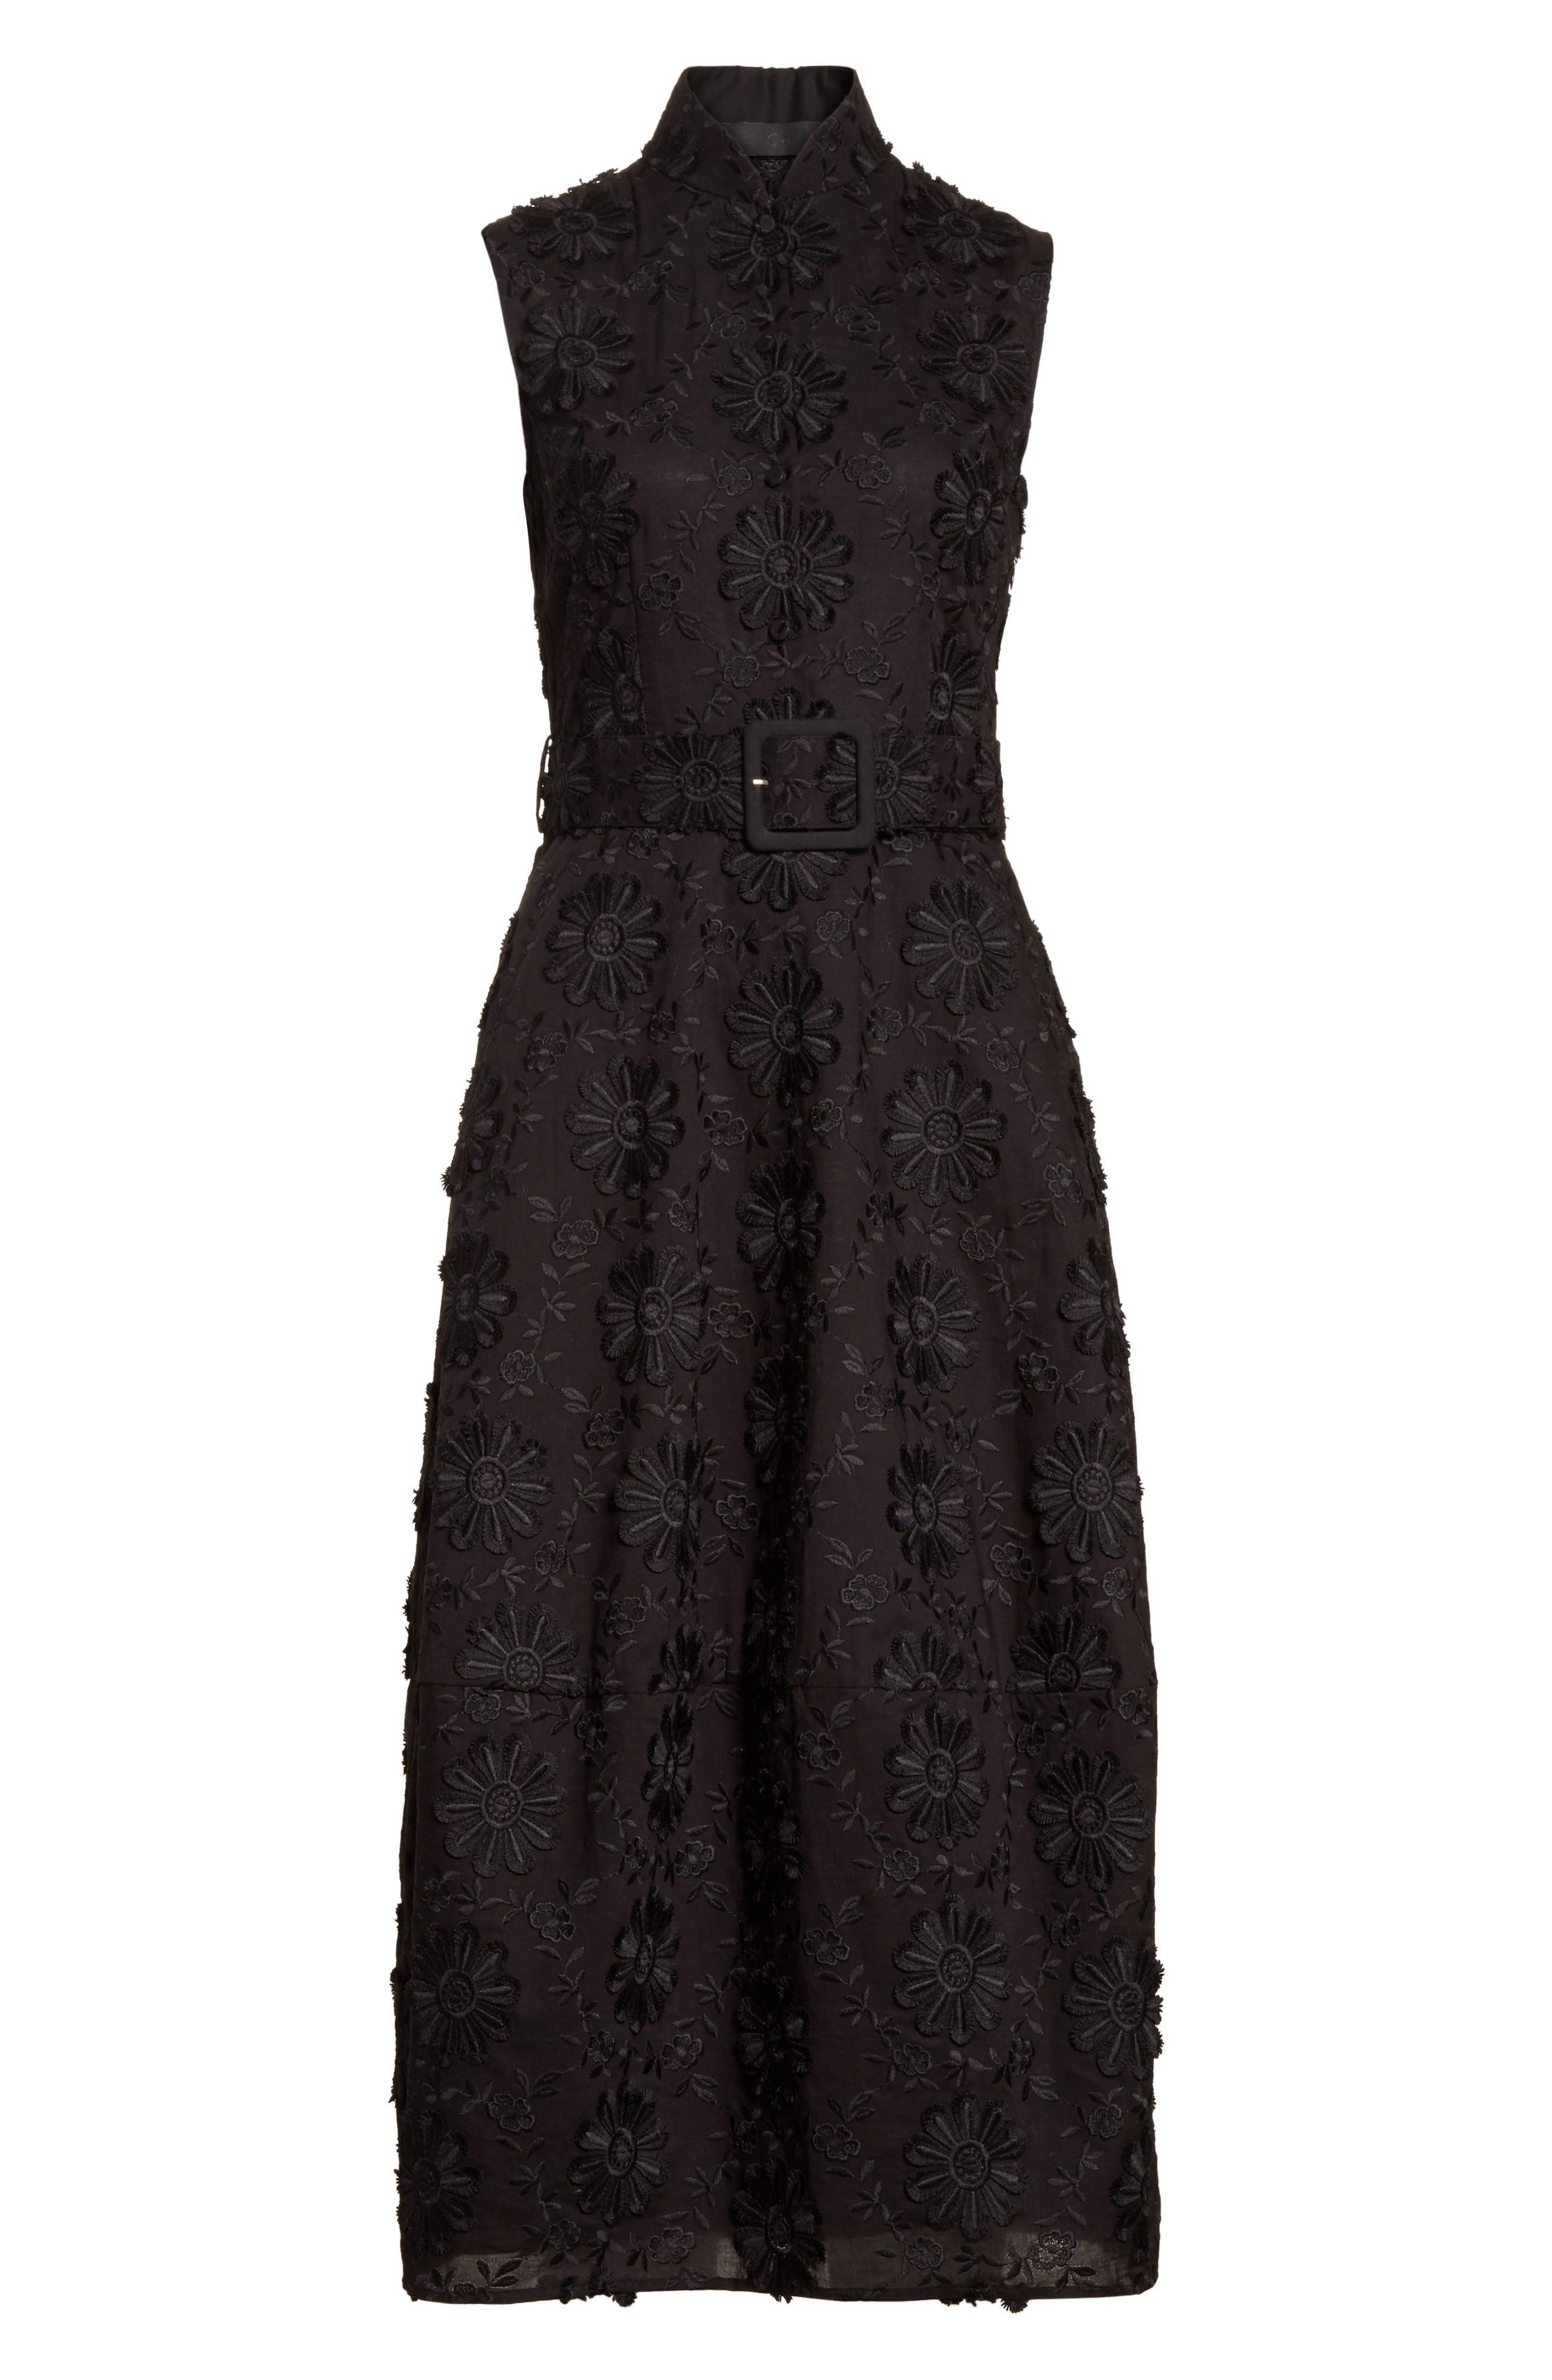 Floral Embroidered Dress,                             Alternate thumbnail 6, color,                             001